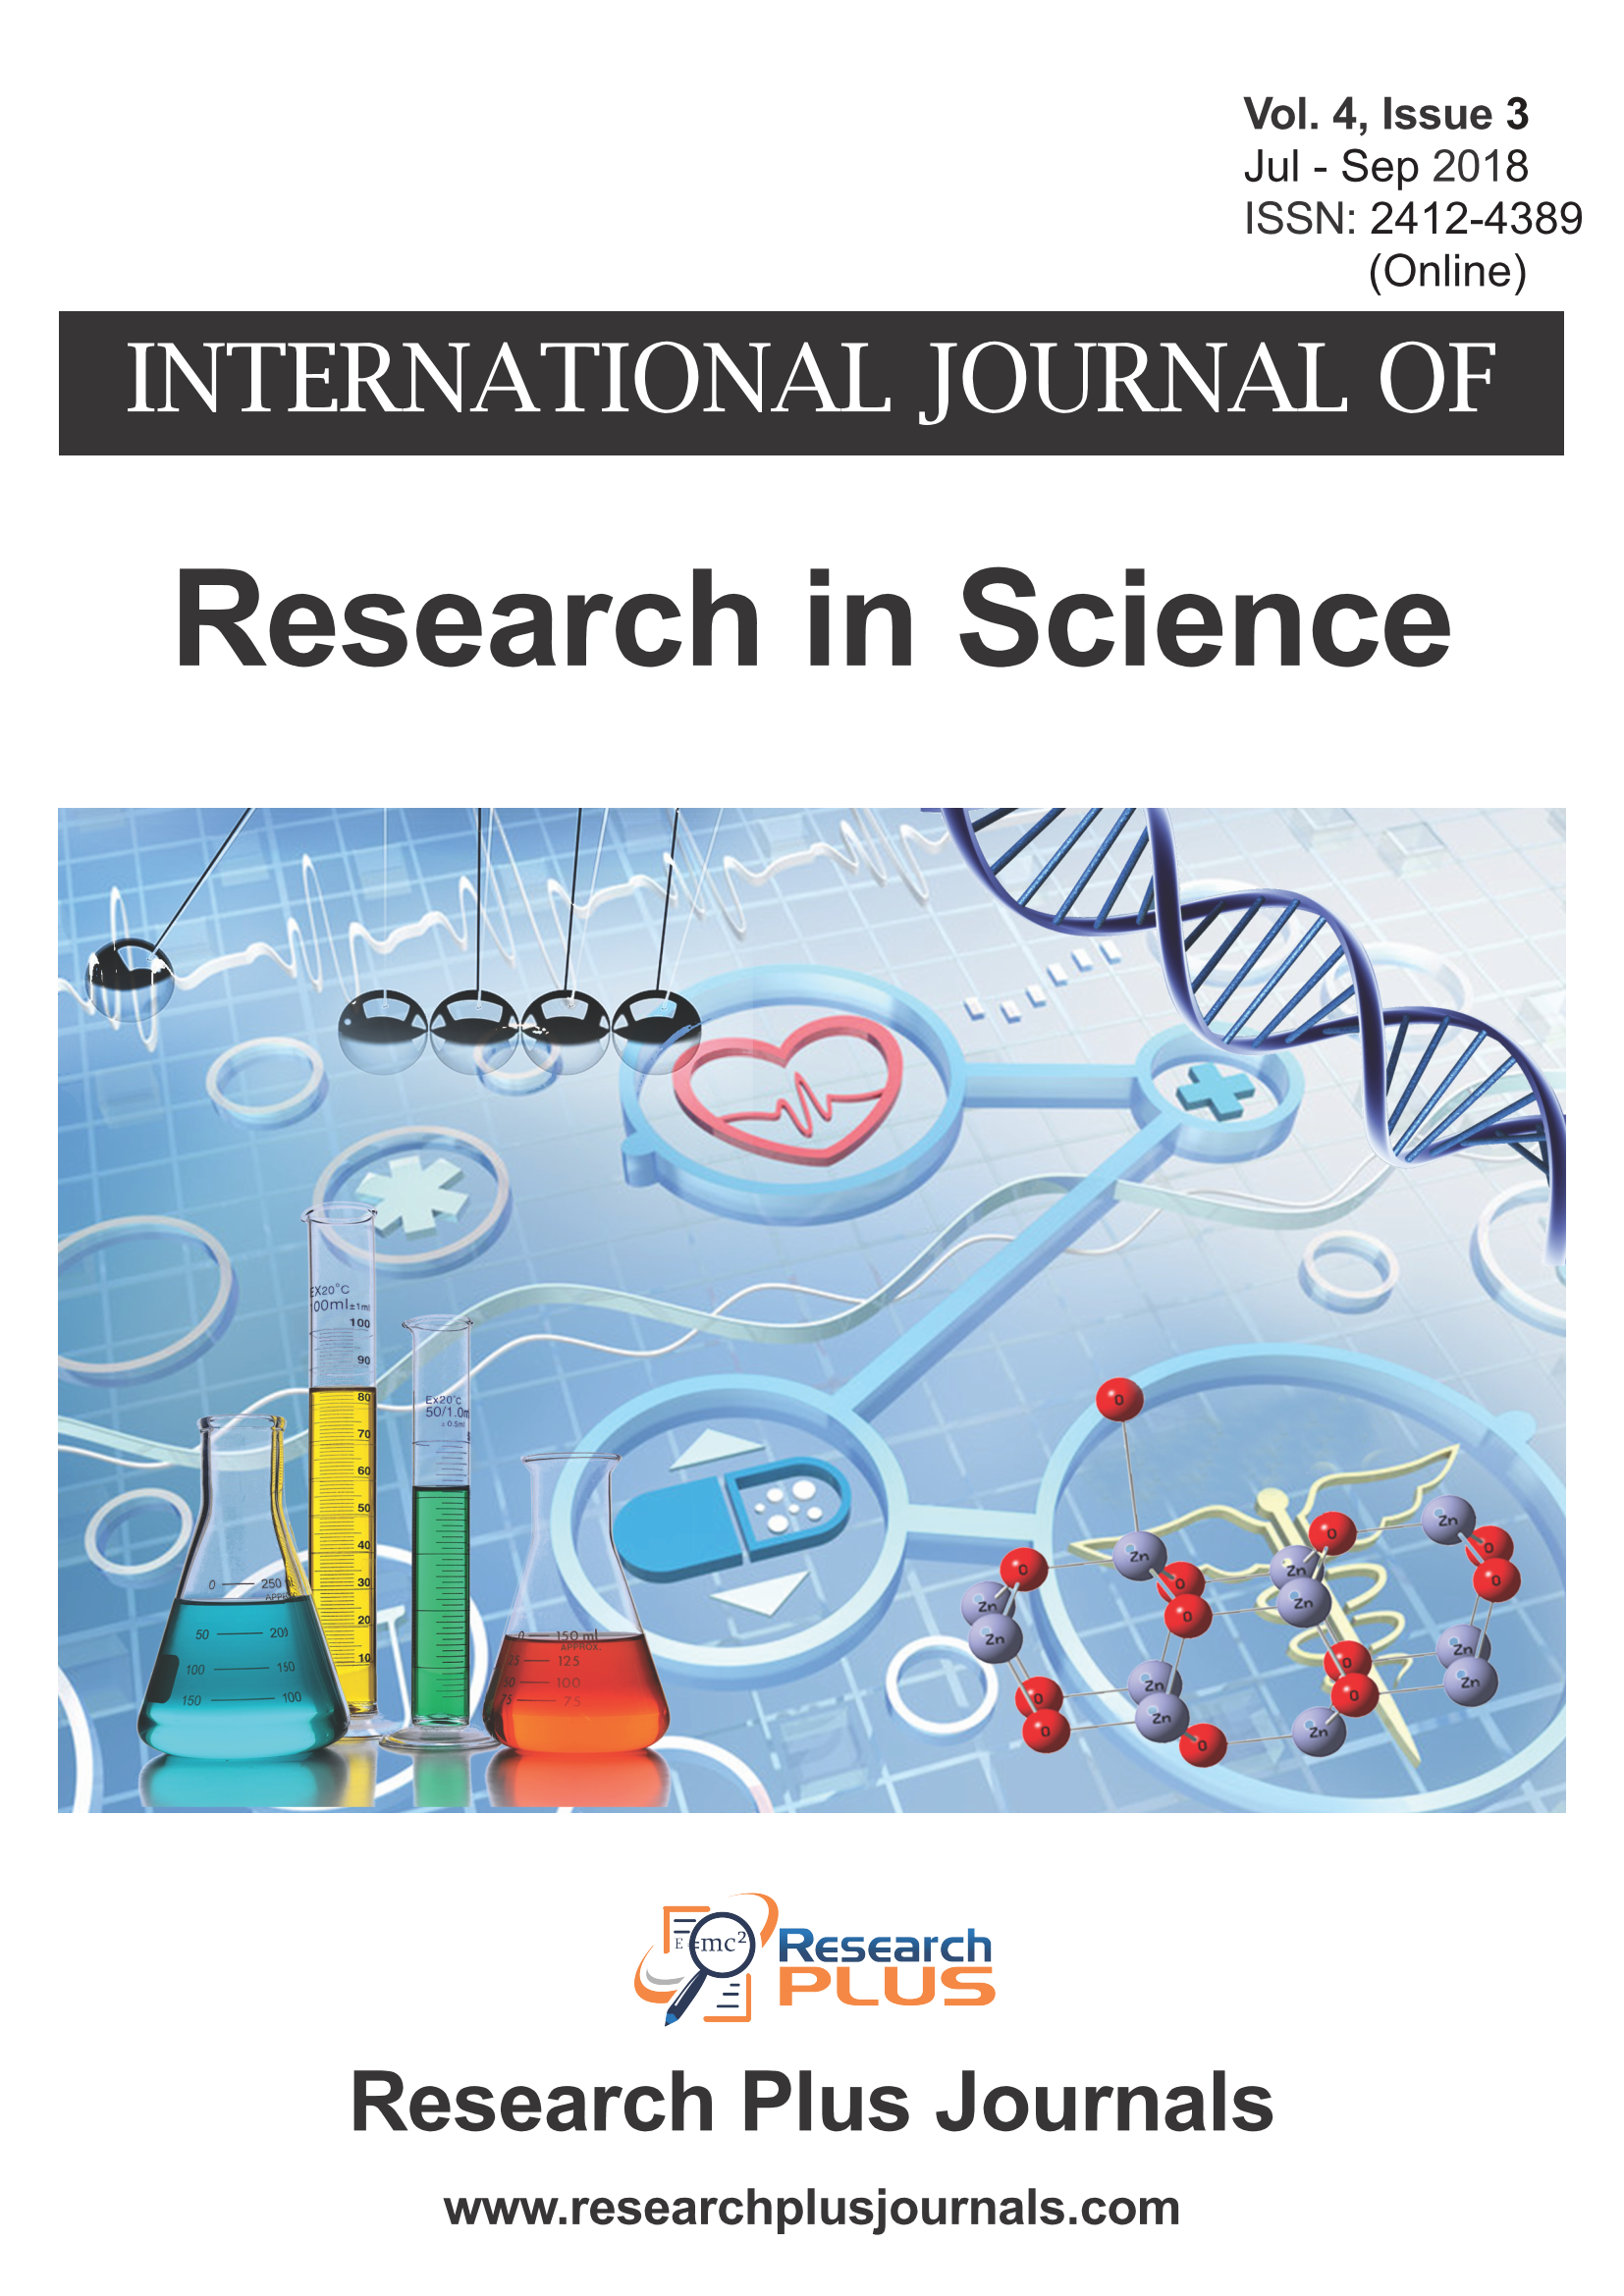 Volume 4, Issue 3, International Journal of Research in Science (IJRS) (Online ISSN 2412-4389)